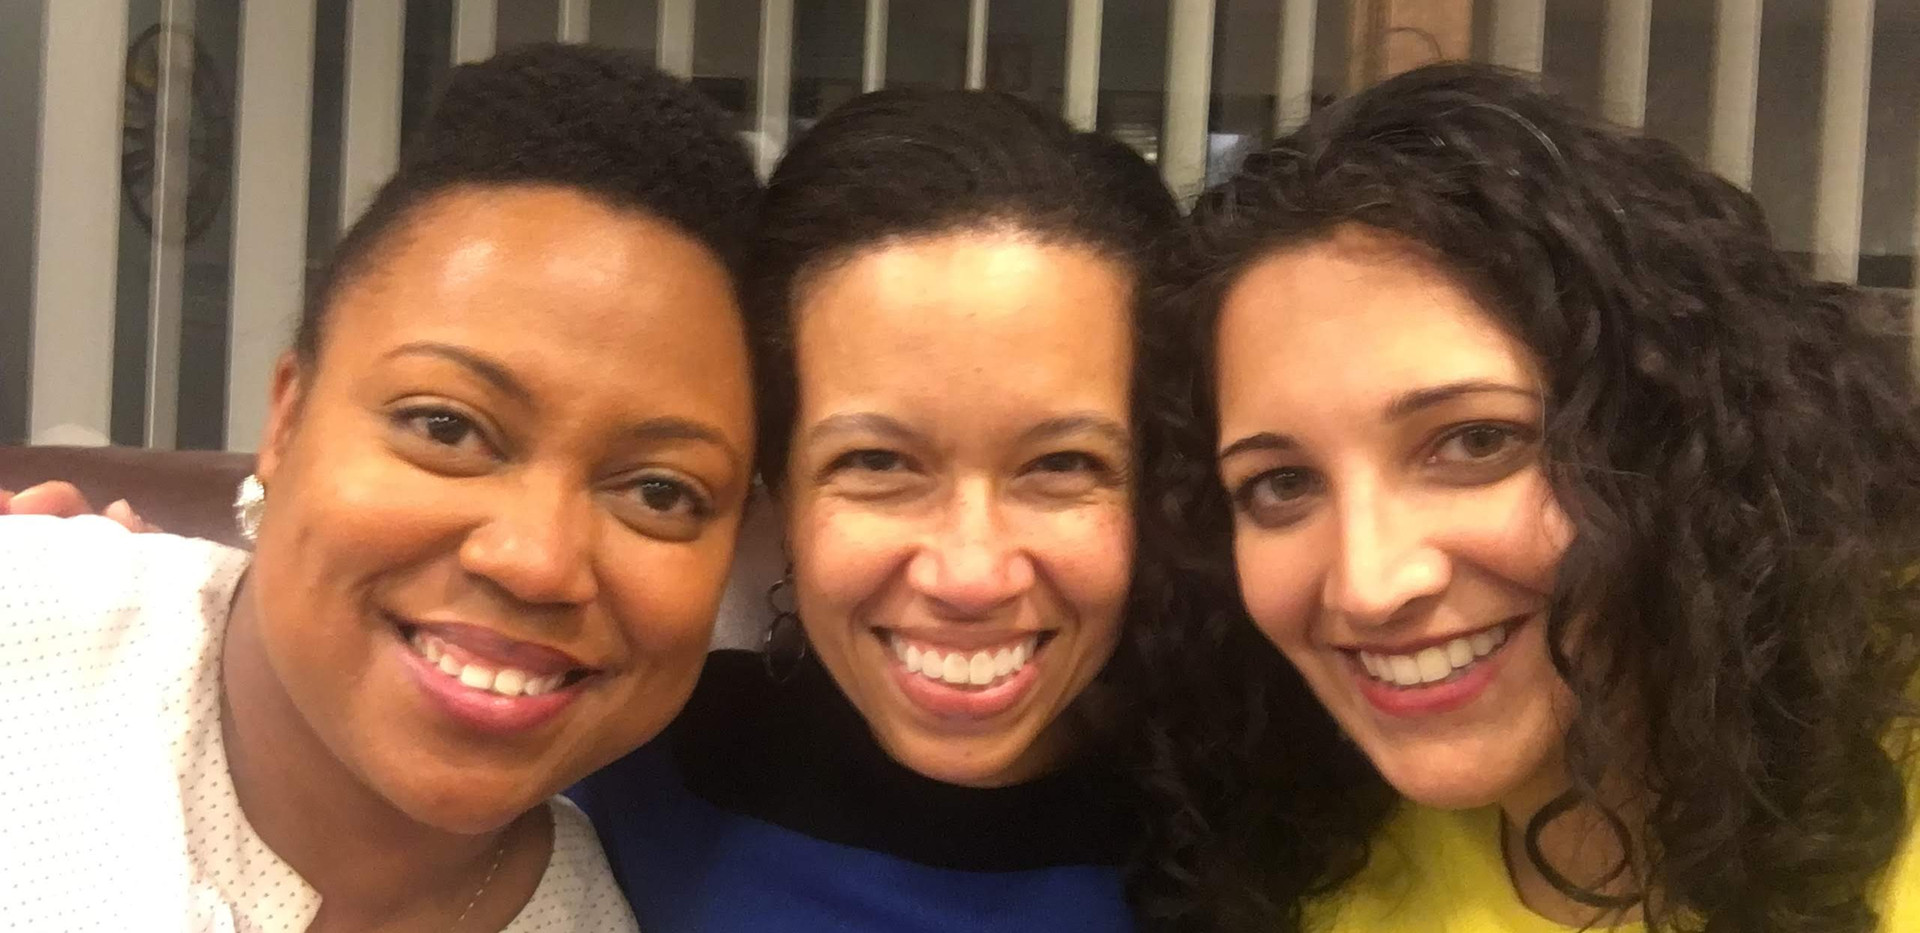 Candace Moore, Elisabeth Greer, and Niketa Brar celebrate the win at the Chicago Lawyers' Committee's law offices on the night of the court decision. Moore went on to become Chicago's first Chief Equity Officer in June 2019 and leads the Office of Equity and Racial Justice for the City of Chicago.